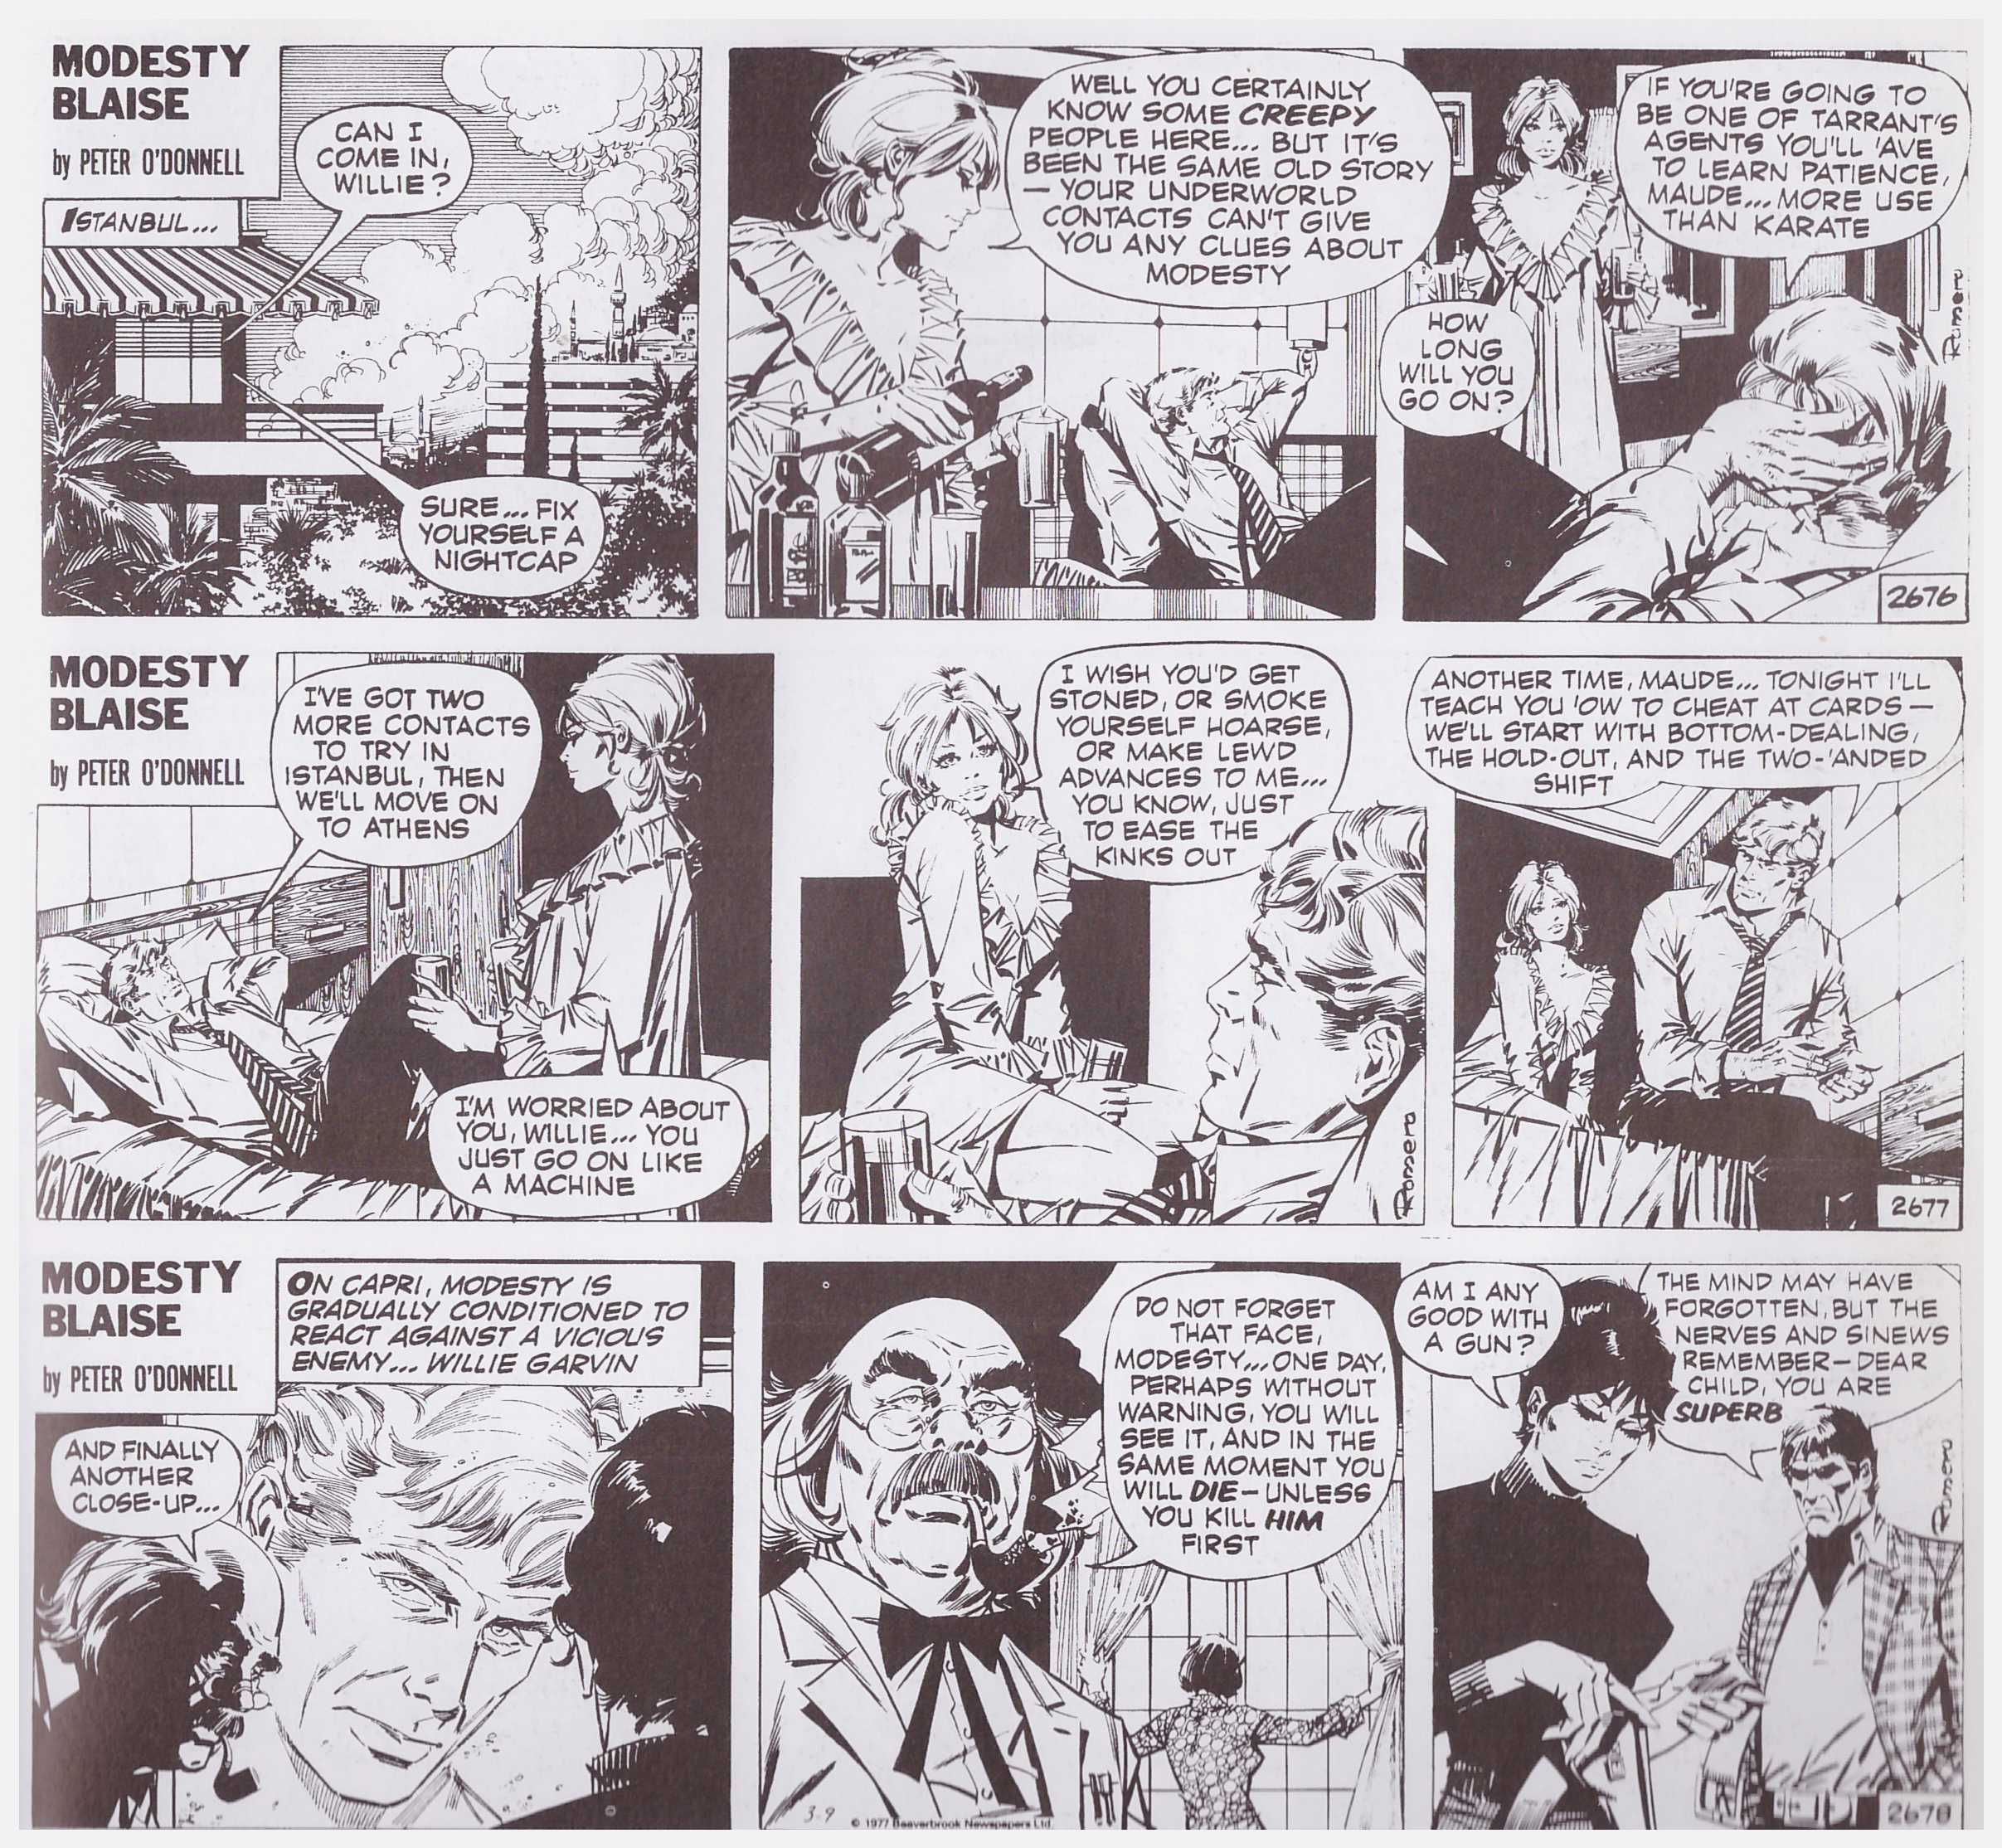 Modesty Blaise The Puppet Master review